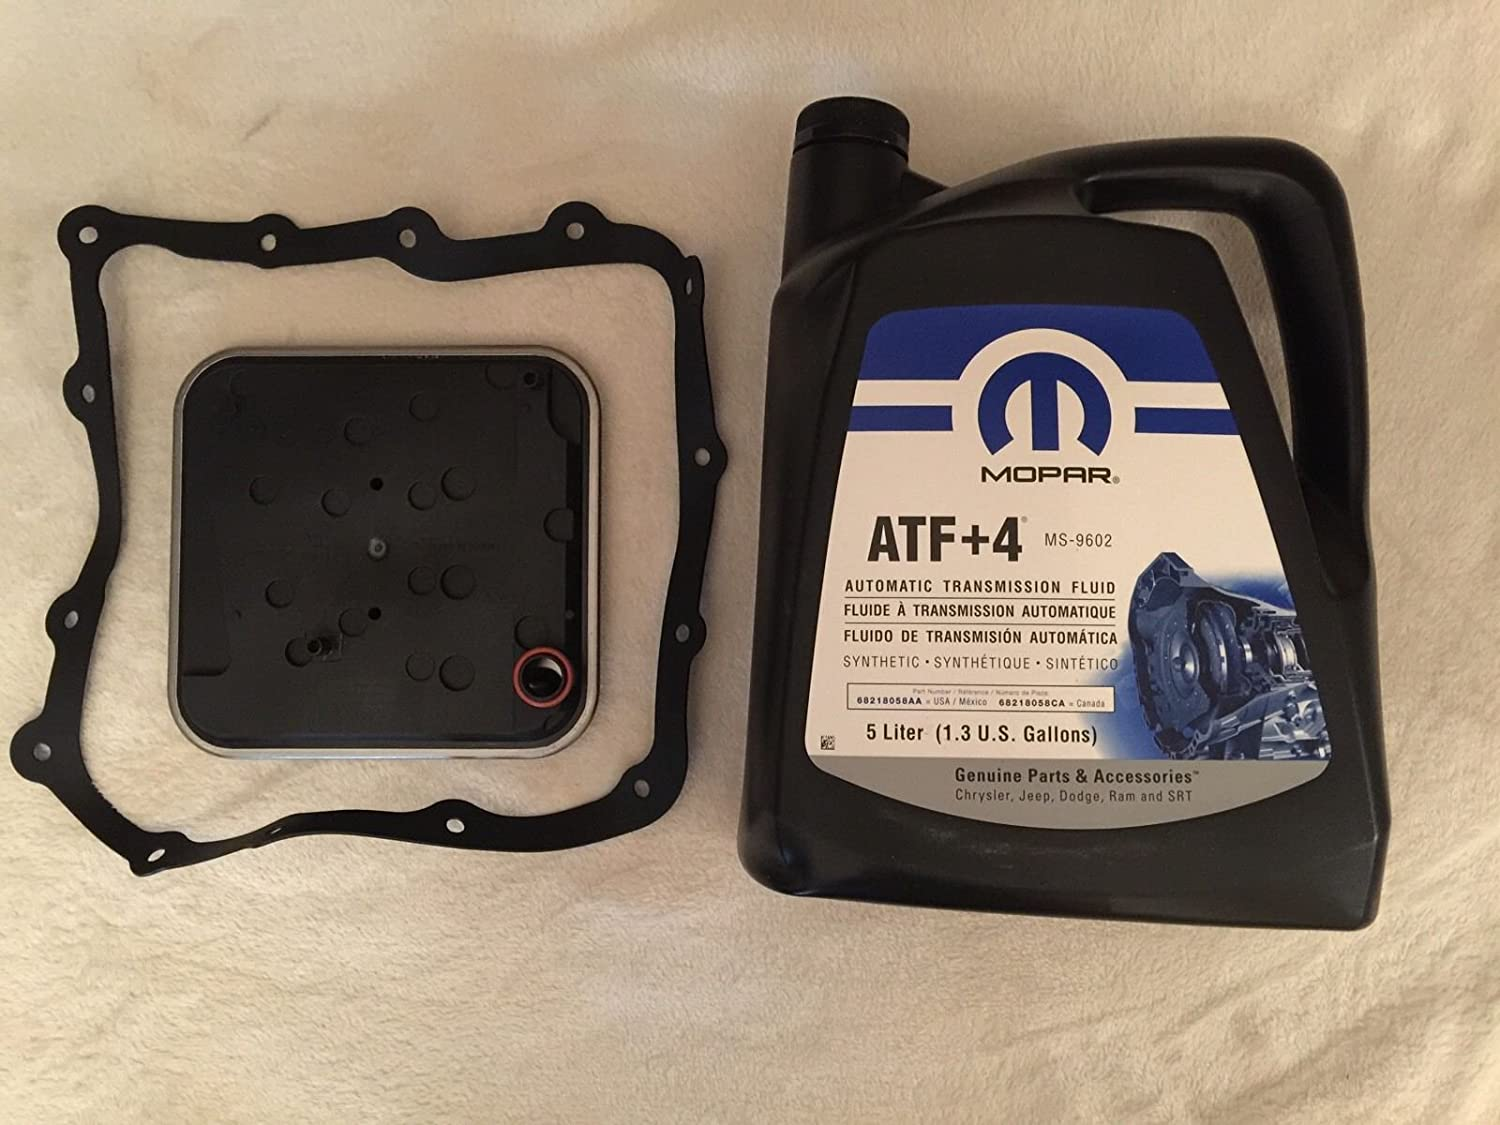 Origine Mopar Windows Installer XML 58934  AFT + 4  Kit de service de transmission automatique Filtre + 5  L MOPAR WIX